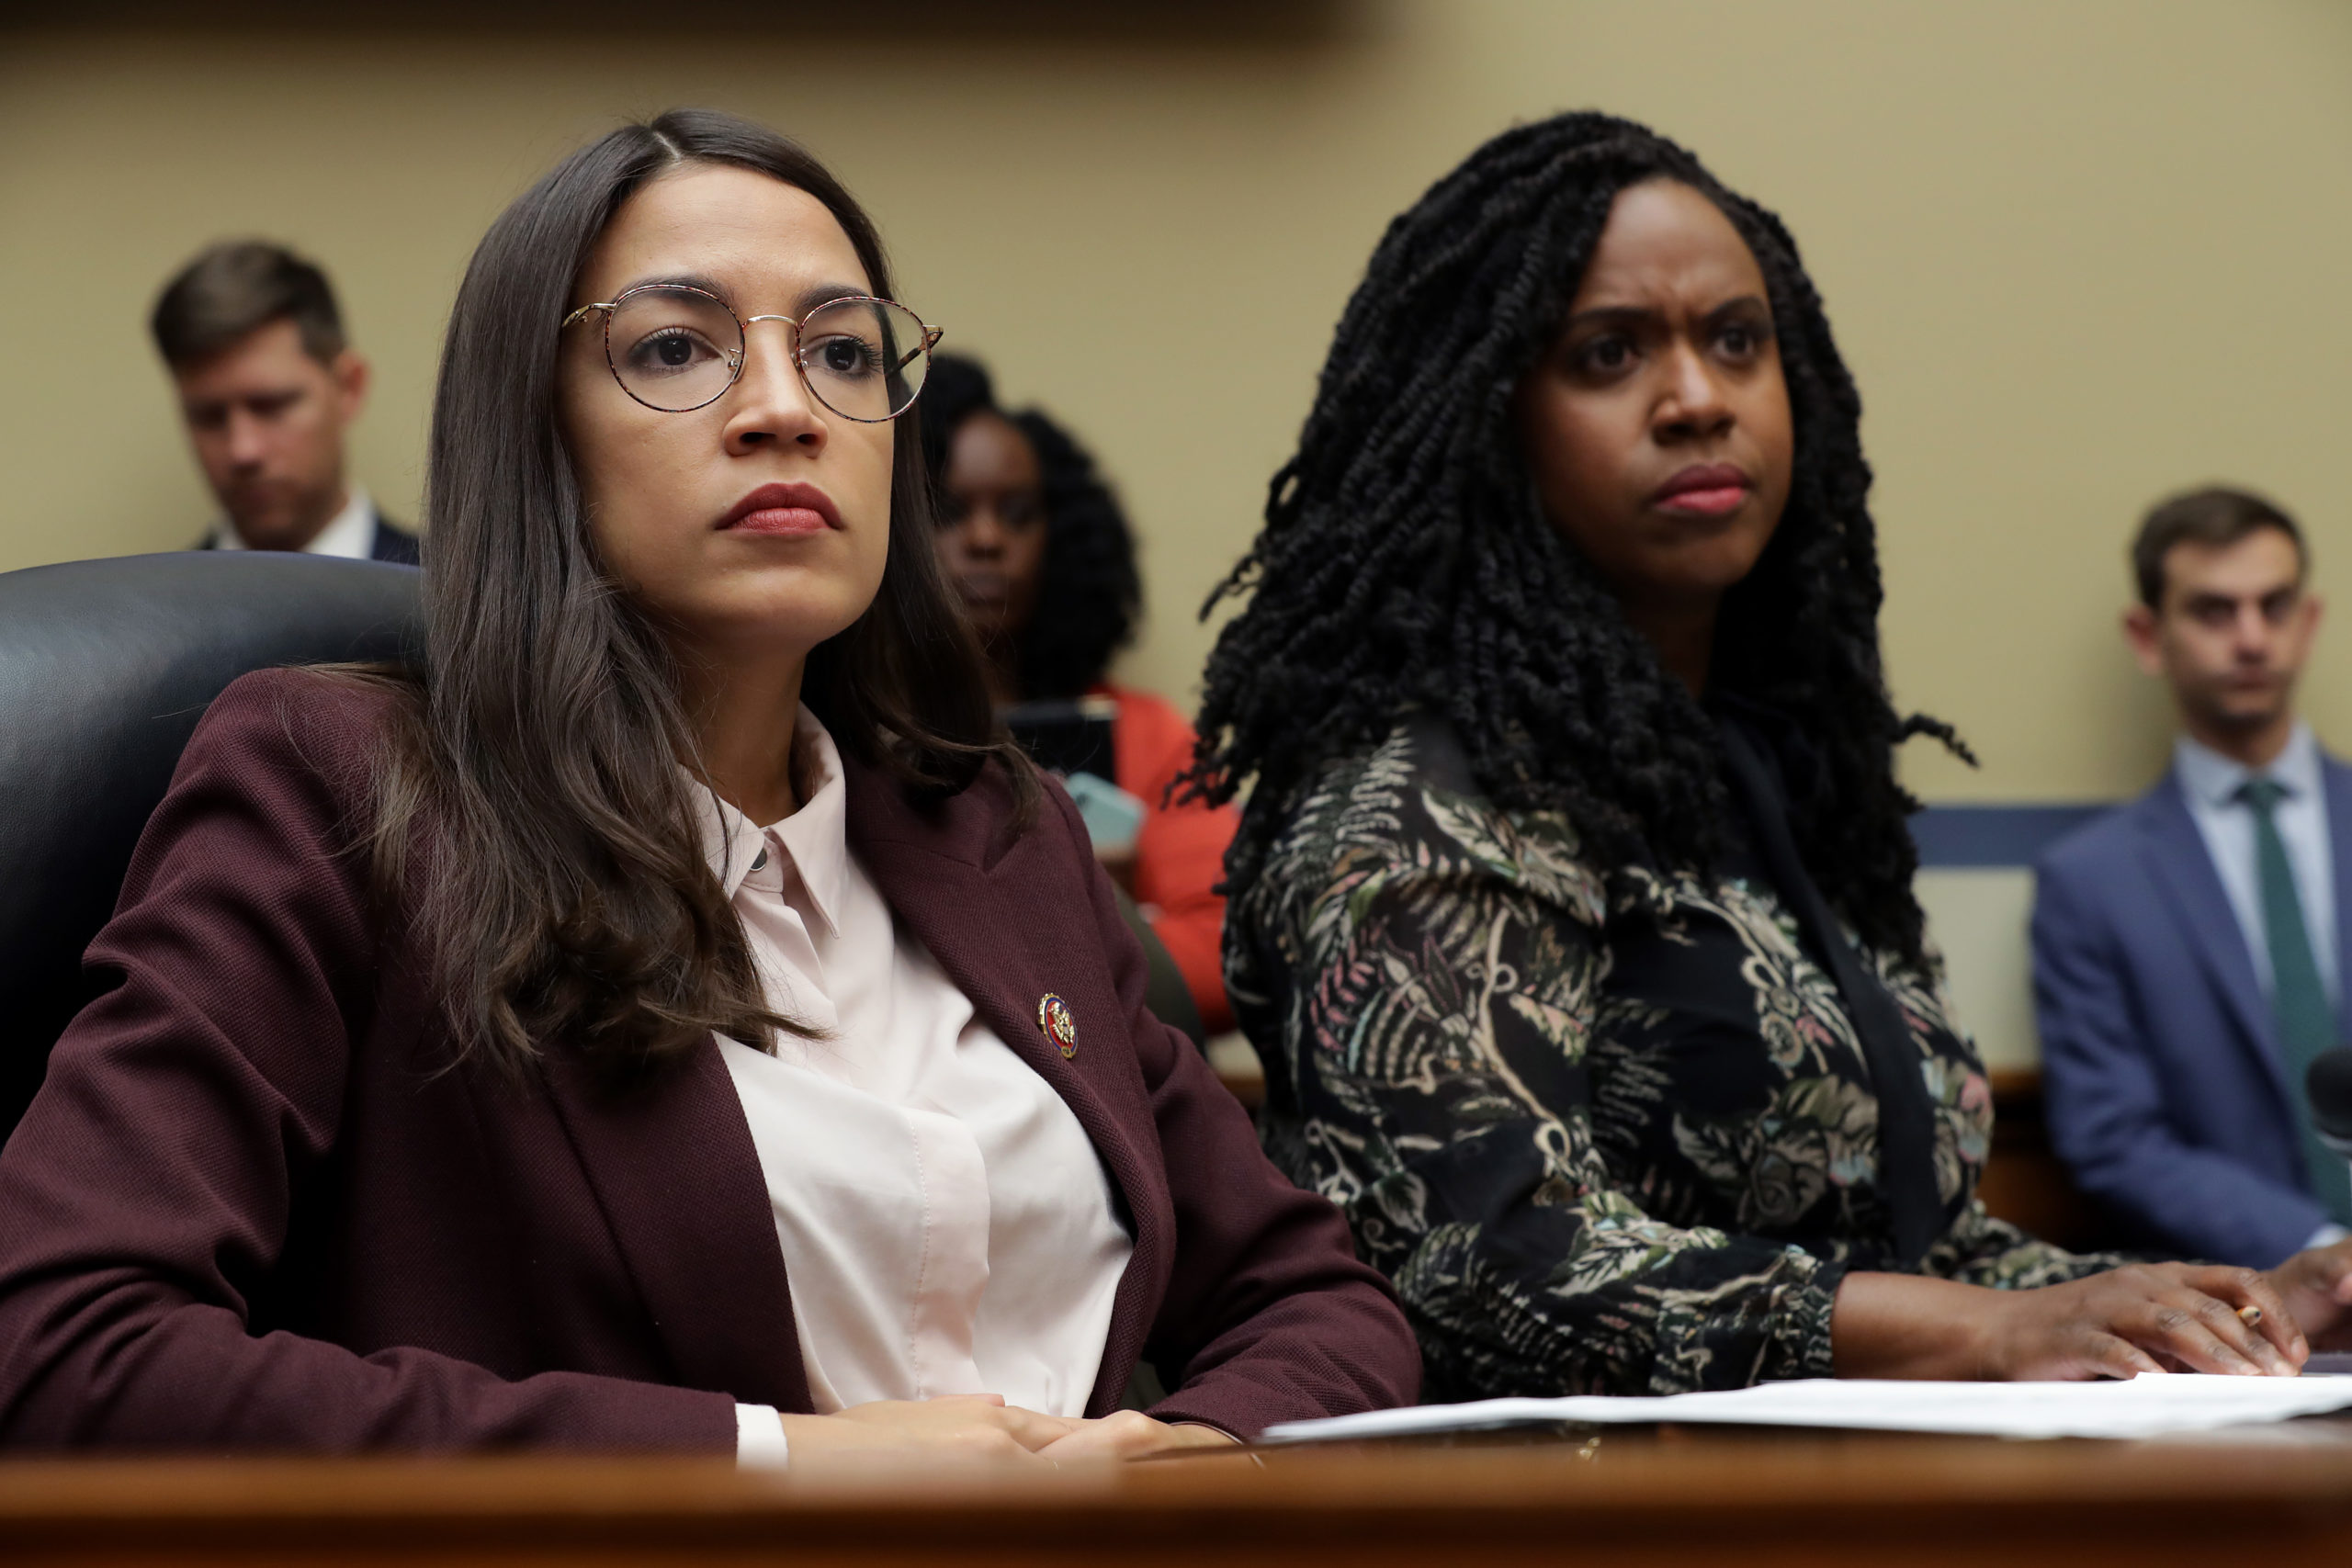 House Oversight and Government Reform Committee members Rep. Alexandria Ocasio-Cortez (D-NY) (L) and Rep. Ayanna Pressley (D-MA) attend a hearing on drug pricing in the Rayburn House Office building on Capitol Hill July 26, 2019 in Washington, DC. As members of a group of four freshman Democratic women of color, known informally as 'The Squad,' the congresswomen heard testimony from patients and their family members about the negative impacts of rising drug prices in the United States. (Photo by Chip Somodevilla/Getty Images)